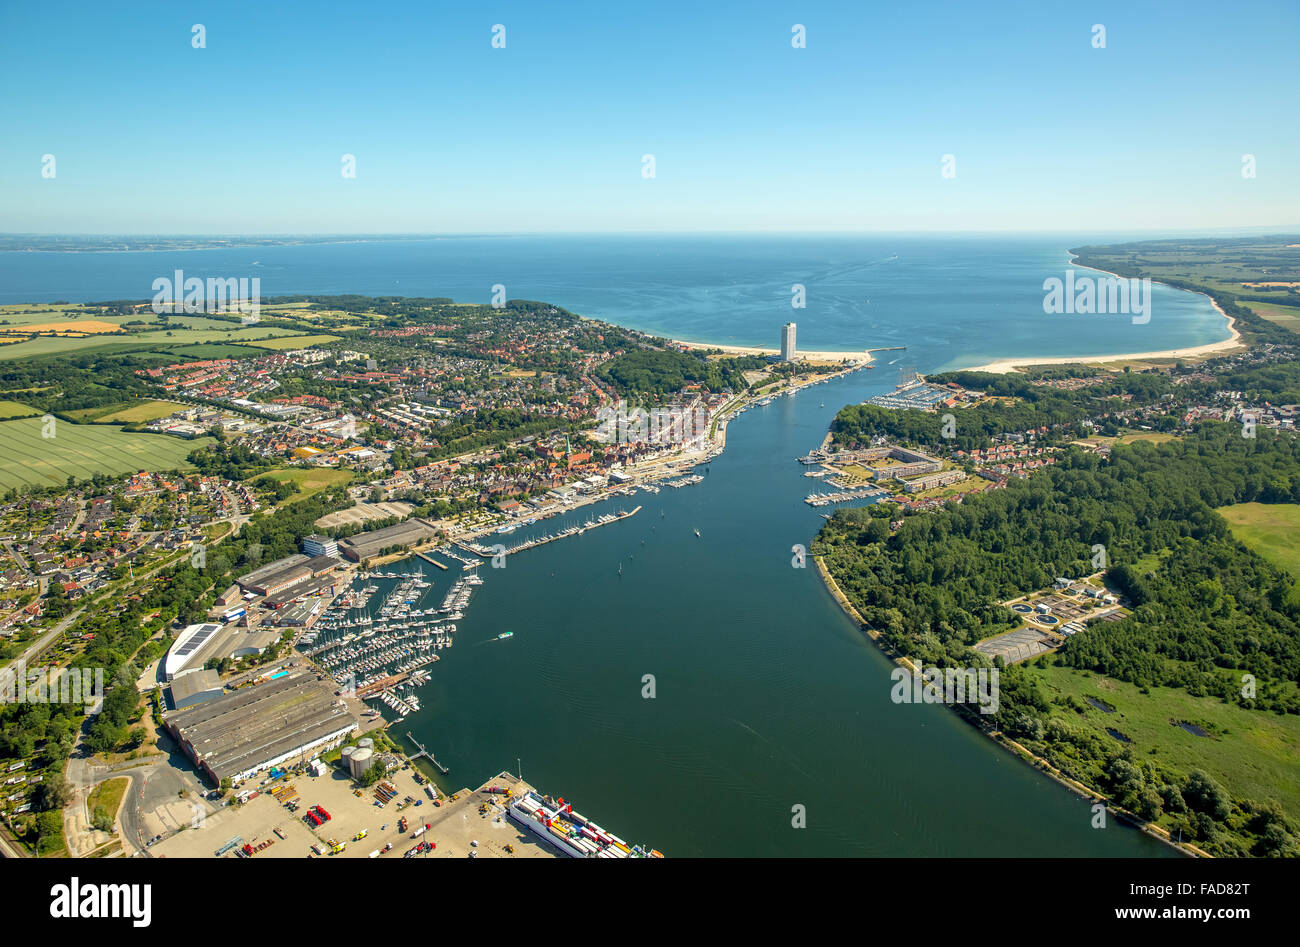 Aerial view, mouth of the Trave and Hotel Maritim, skyscraper and landmark of Travemünde, Travemünde, - Stock Image